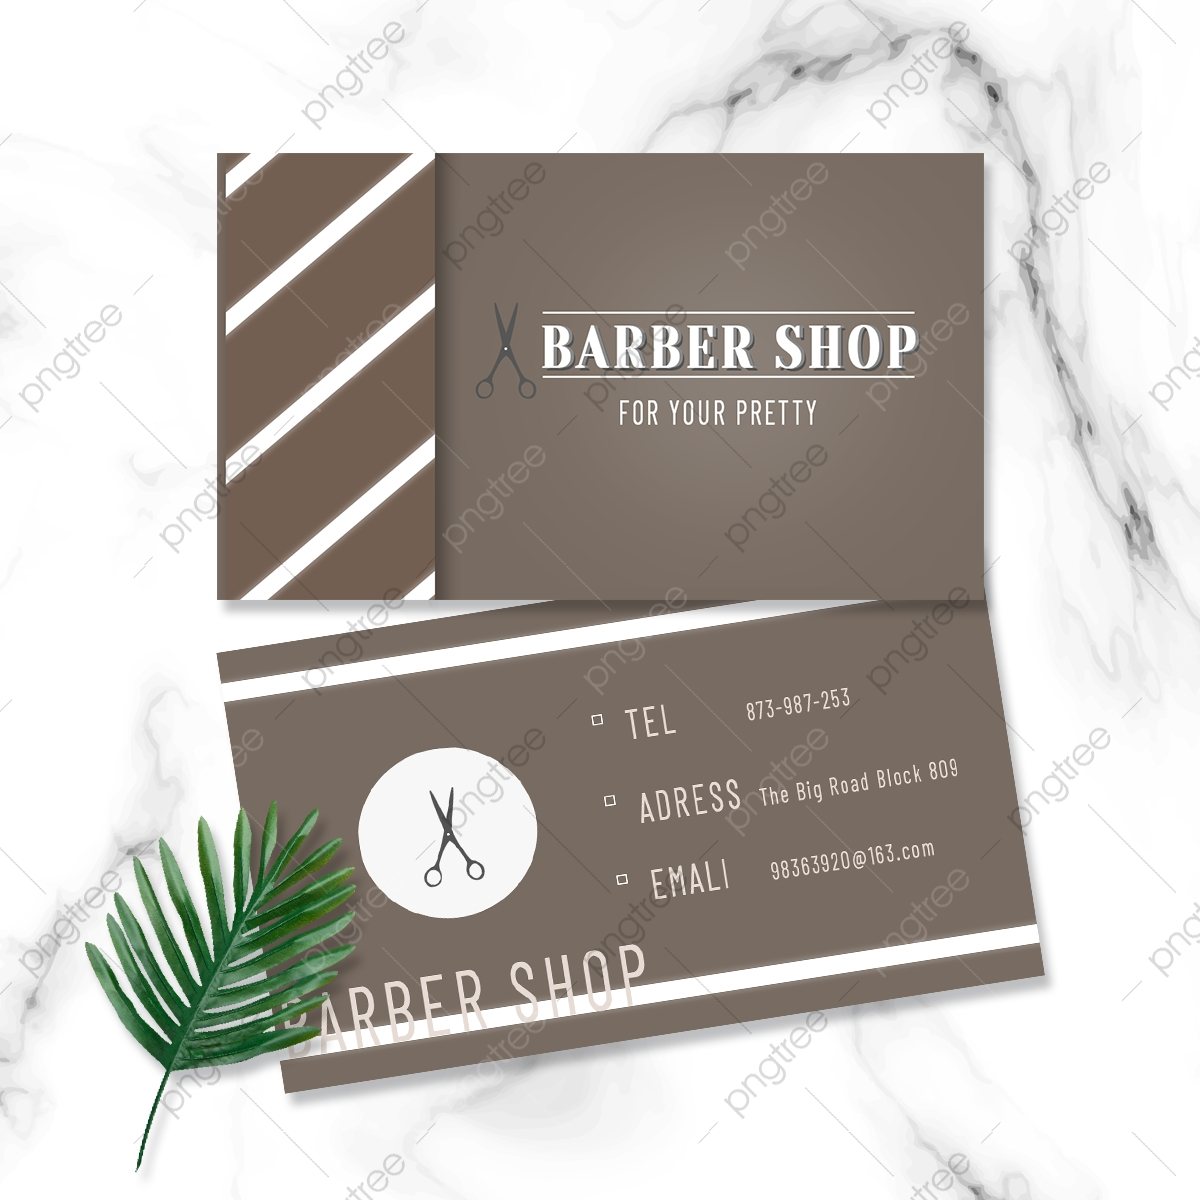 Hair Salon Barber Business Card Template Download On Pngtree